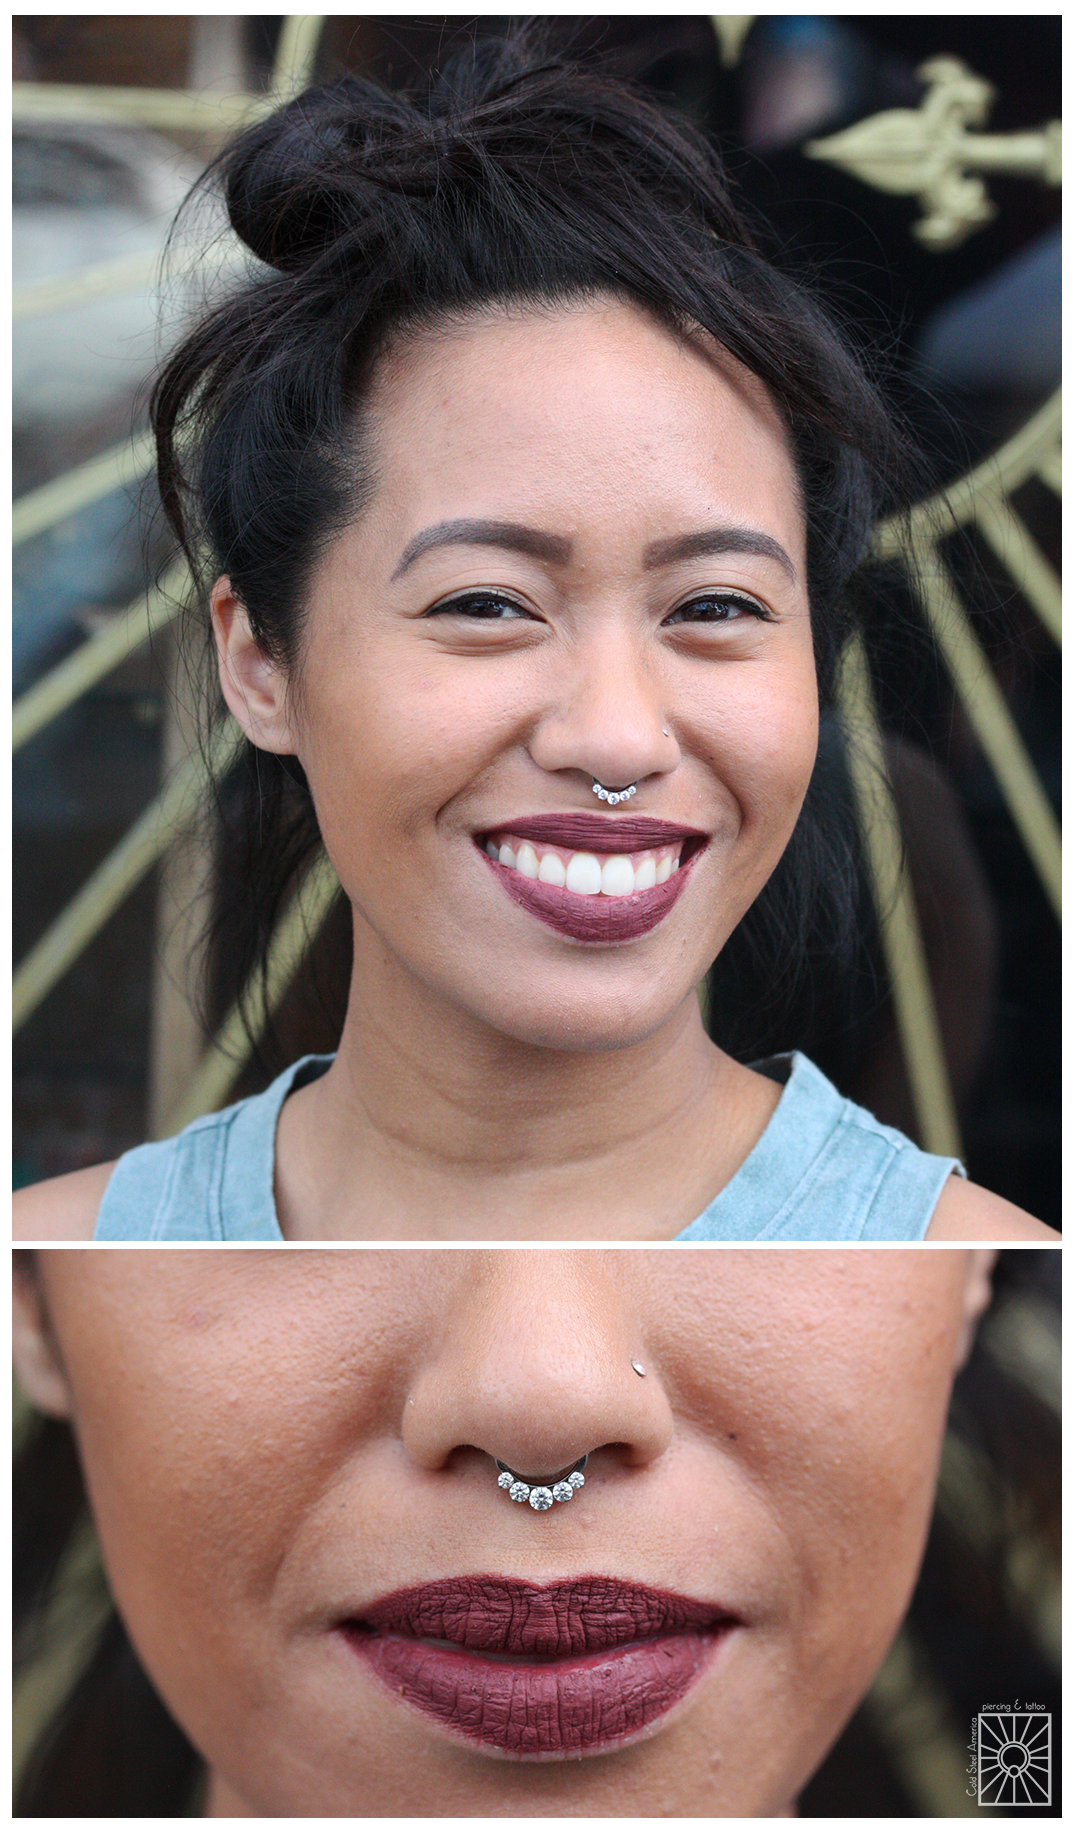 Our fantastic friend Perry at Rose Gold's pierced this beautiful young lady's septum a while ago, and she paid us a visit yesterday to pick up one of these fun titanium clicker pieces from Industrial Strength! Doesn't it just look perfect on her?